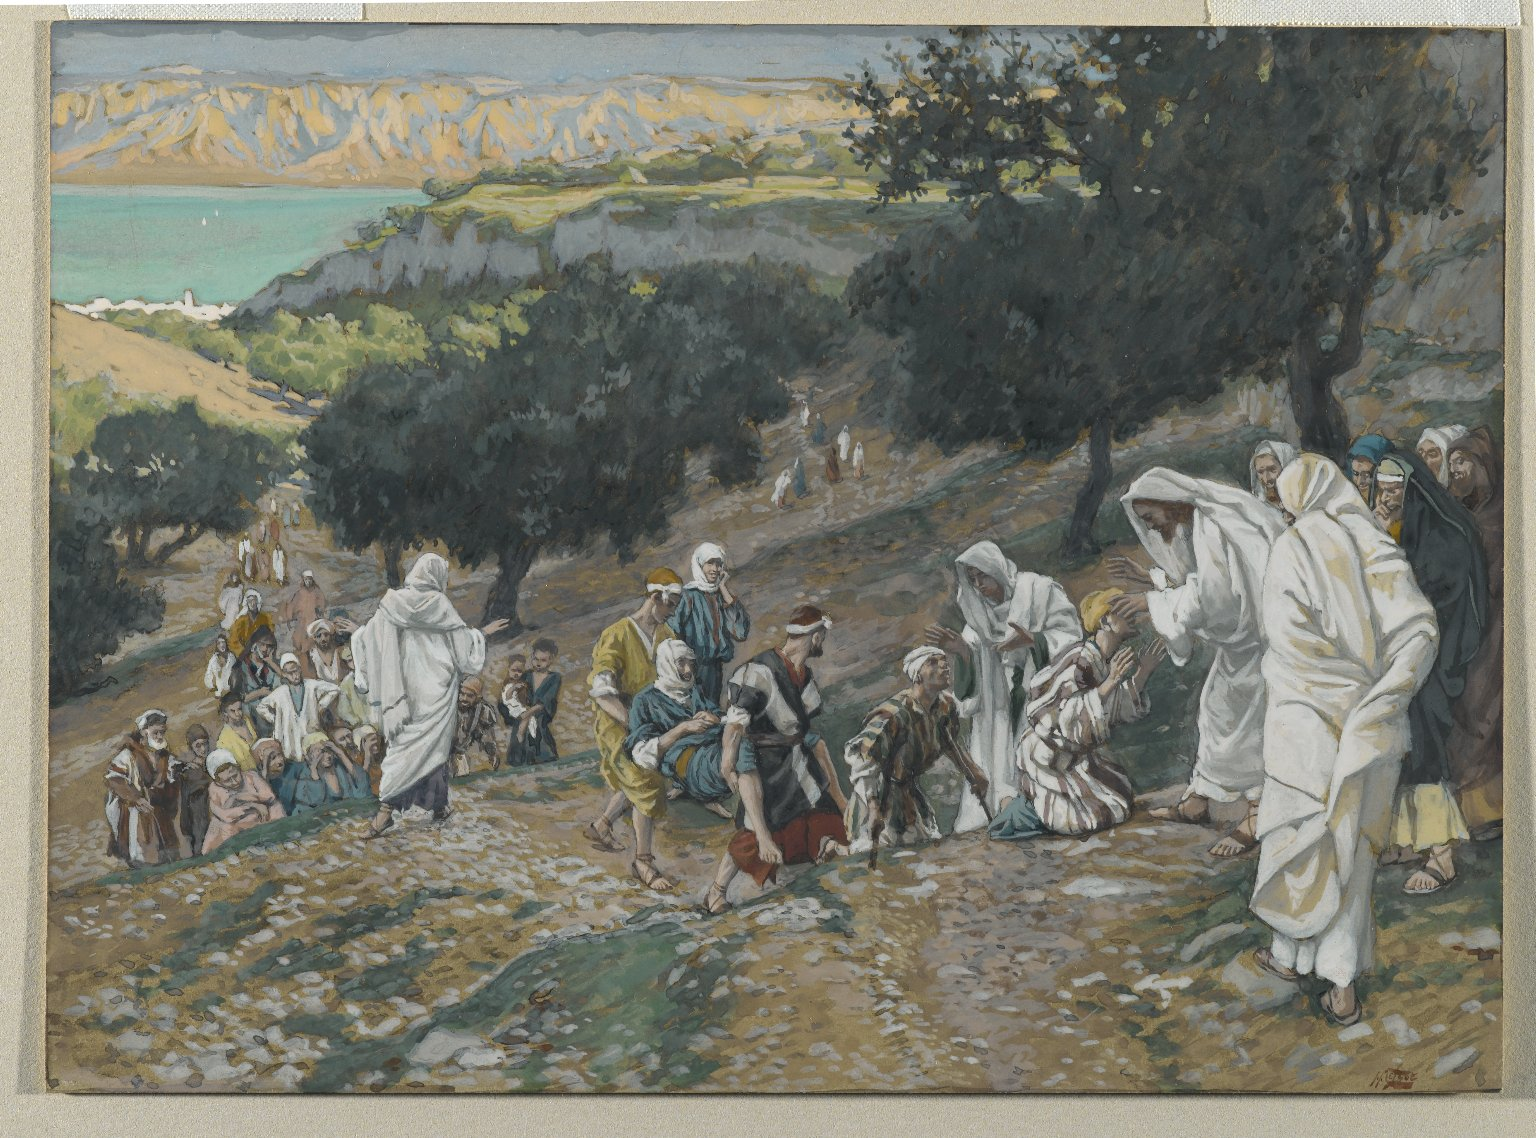 Brooklyn Museum - Jesus Heals the Blind and Lame on the Mountain-2